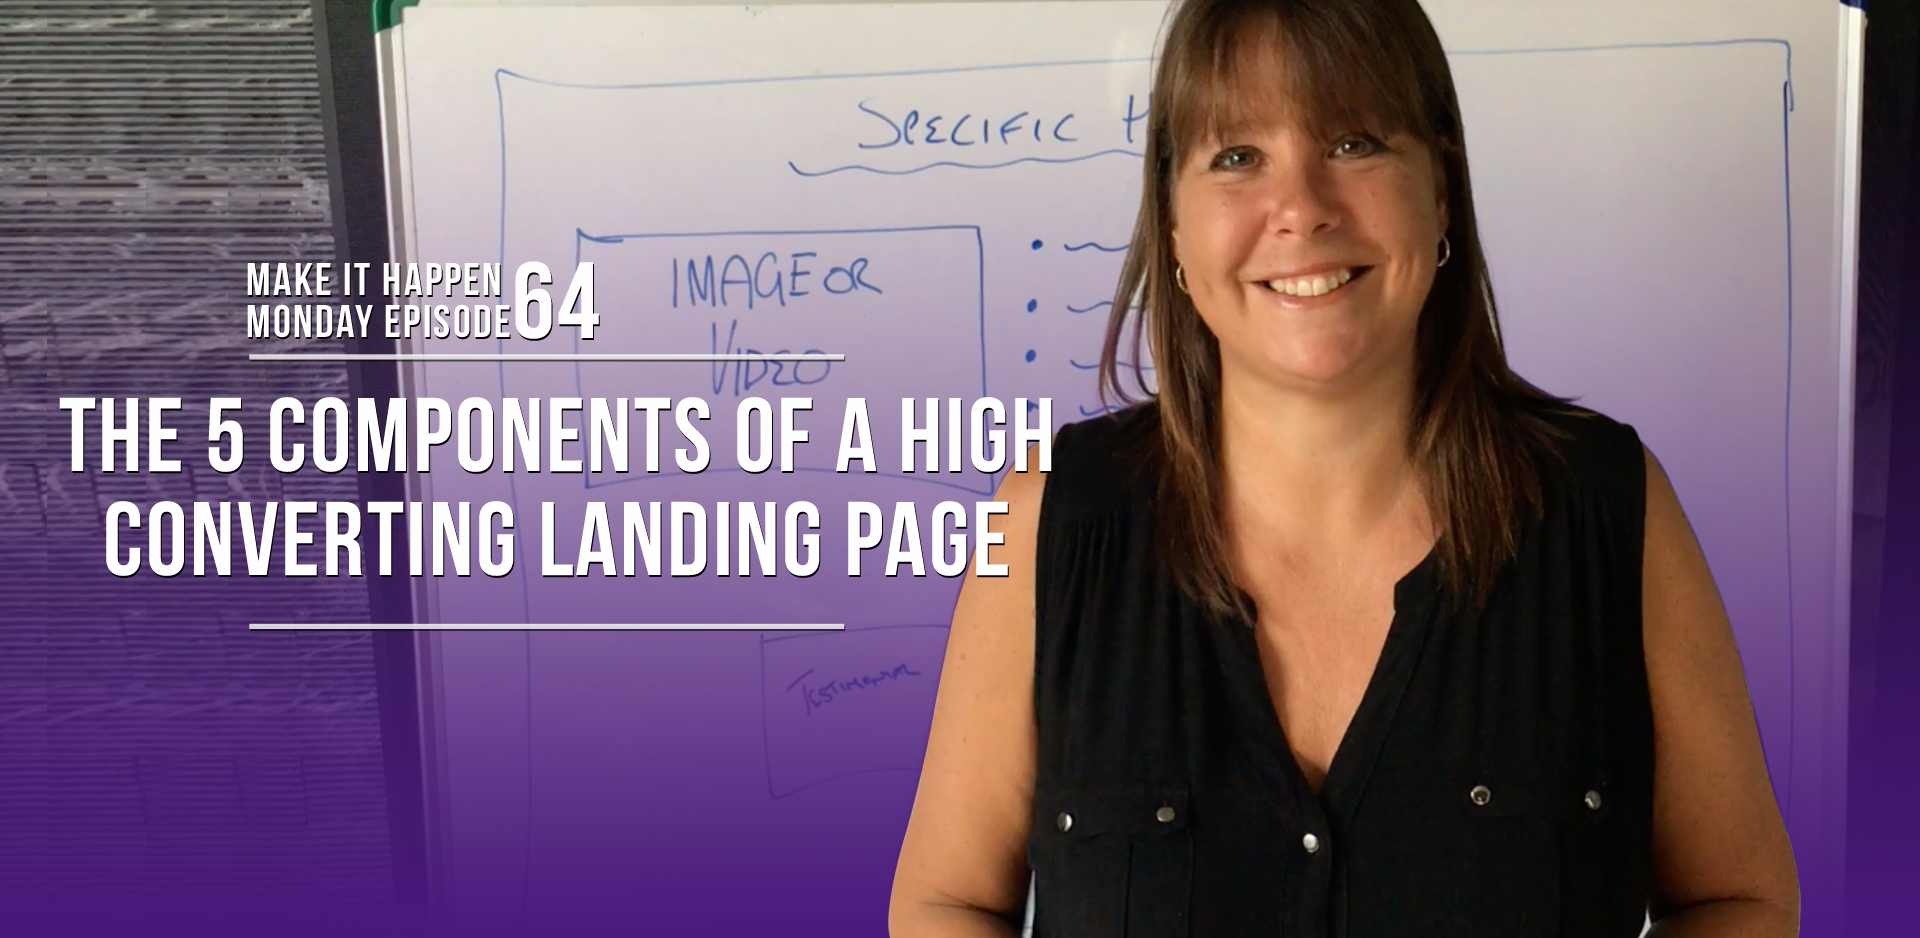 MIHM 63 - The 5 Components of a High Converting Landing Page